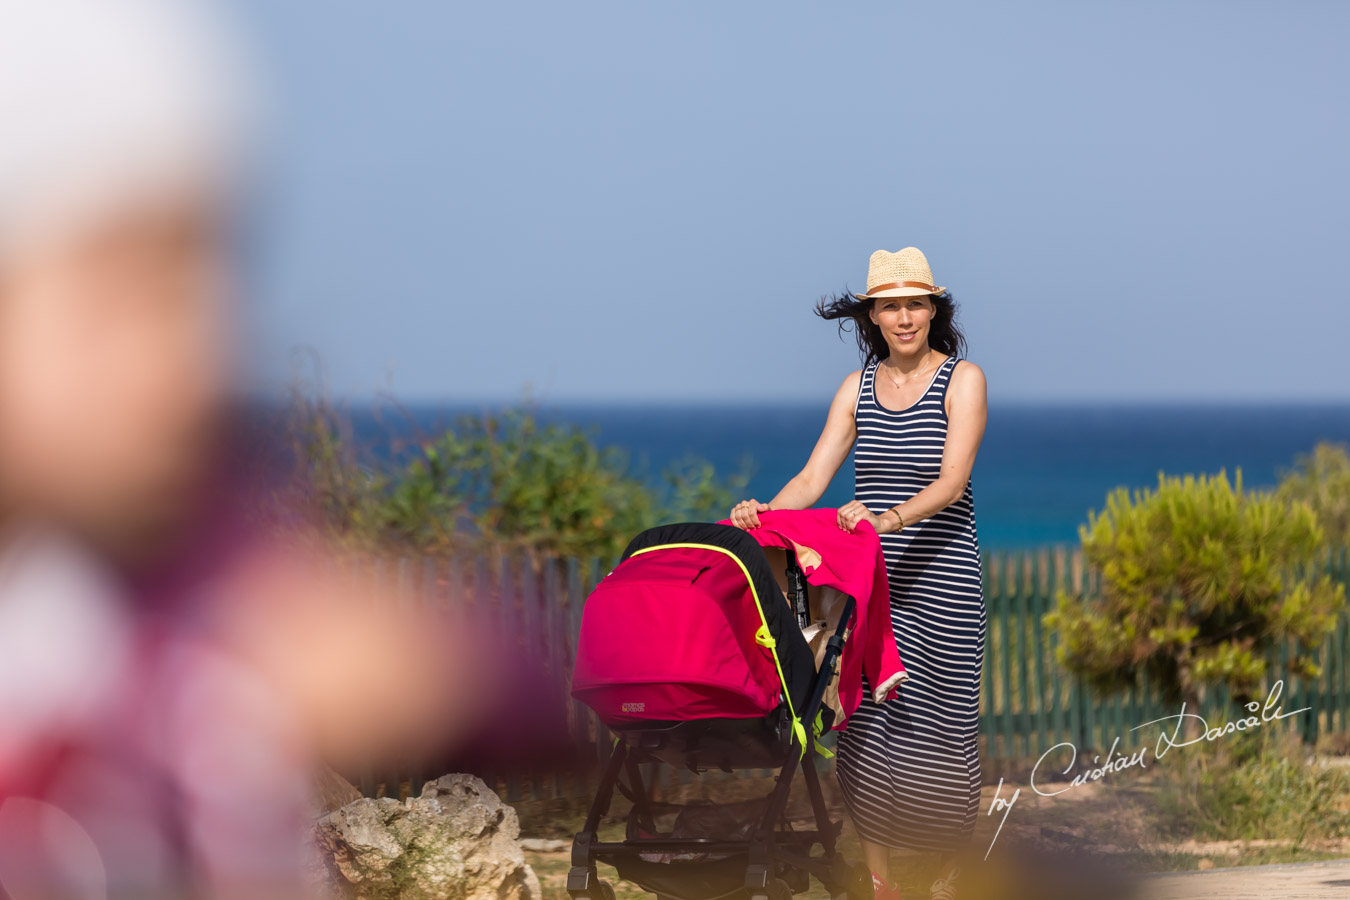 A Family Photo Shoot in Protaras, Cyprus - 09